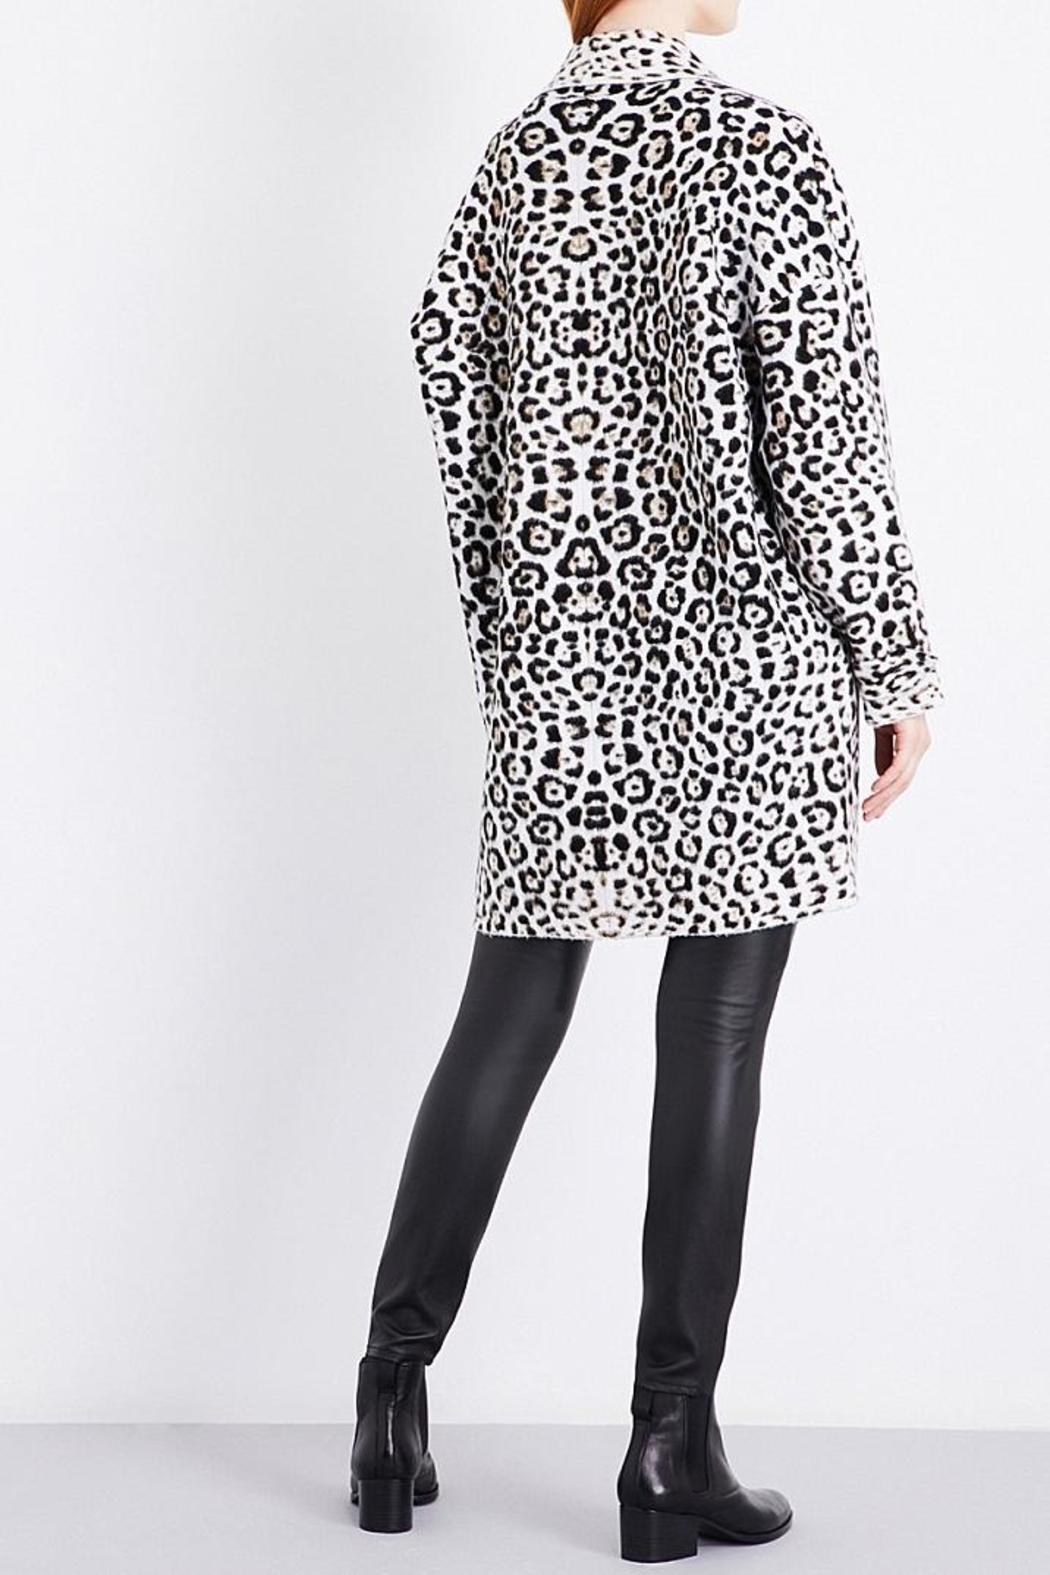 Michael Kors Leopard Wool Blend Jacket - Front Full Image